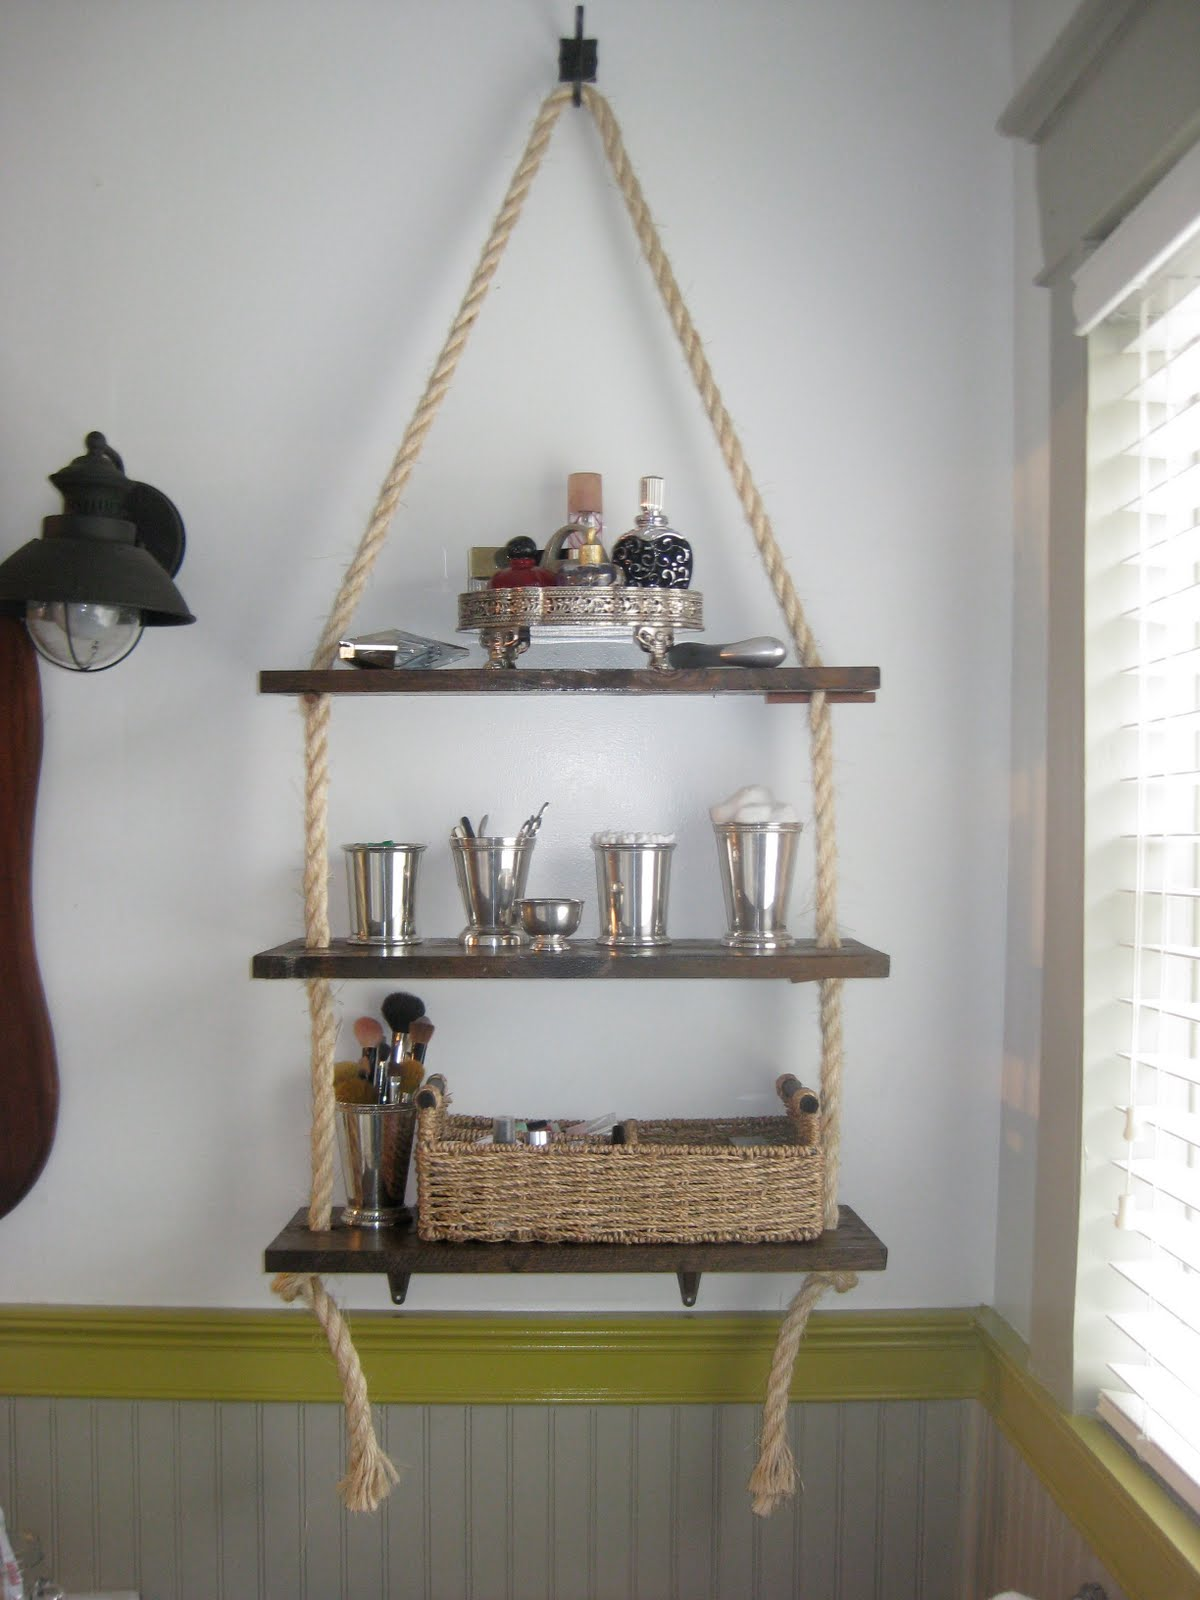 Ordinaire DIY Bathroom Shelving